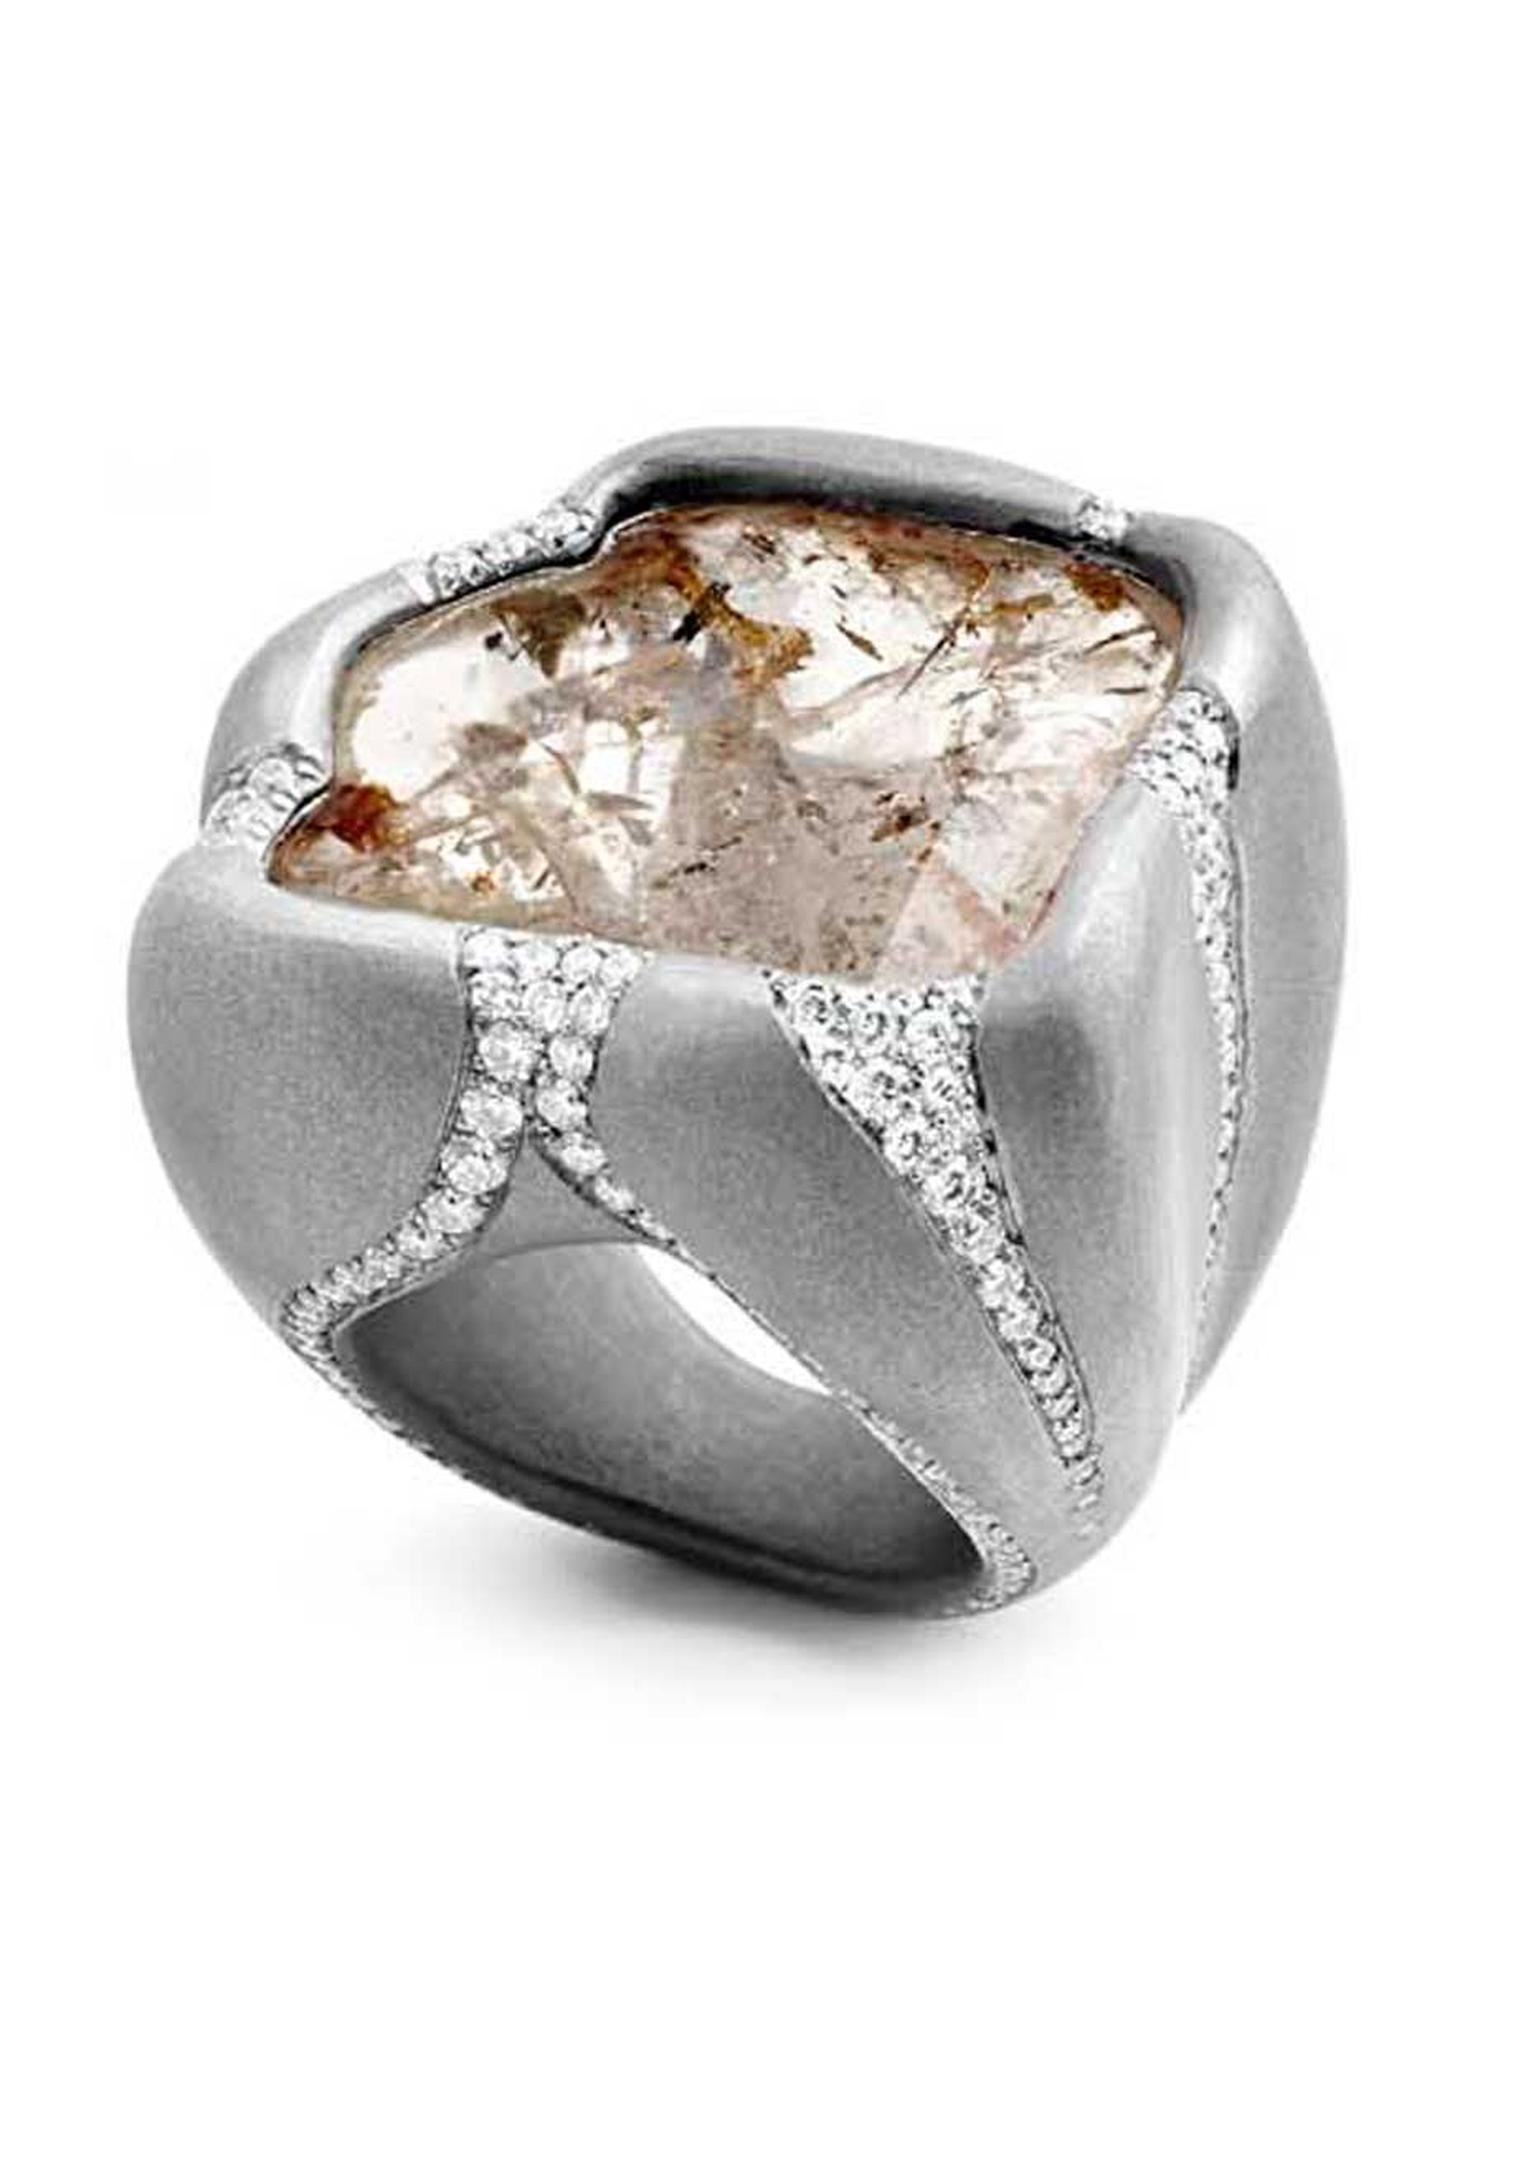 Suzanne Syz Rocky Baby titanium ring set with one flat 16.00ct denditrique diamond and 215 diamonds.